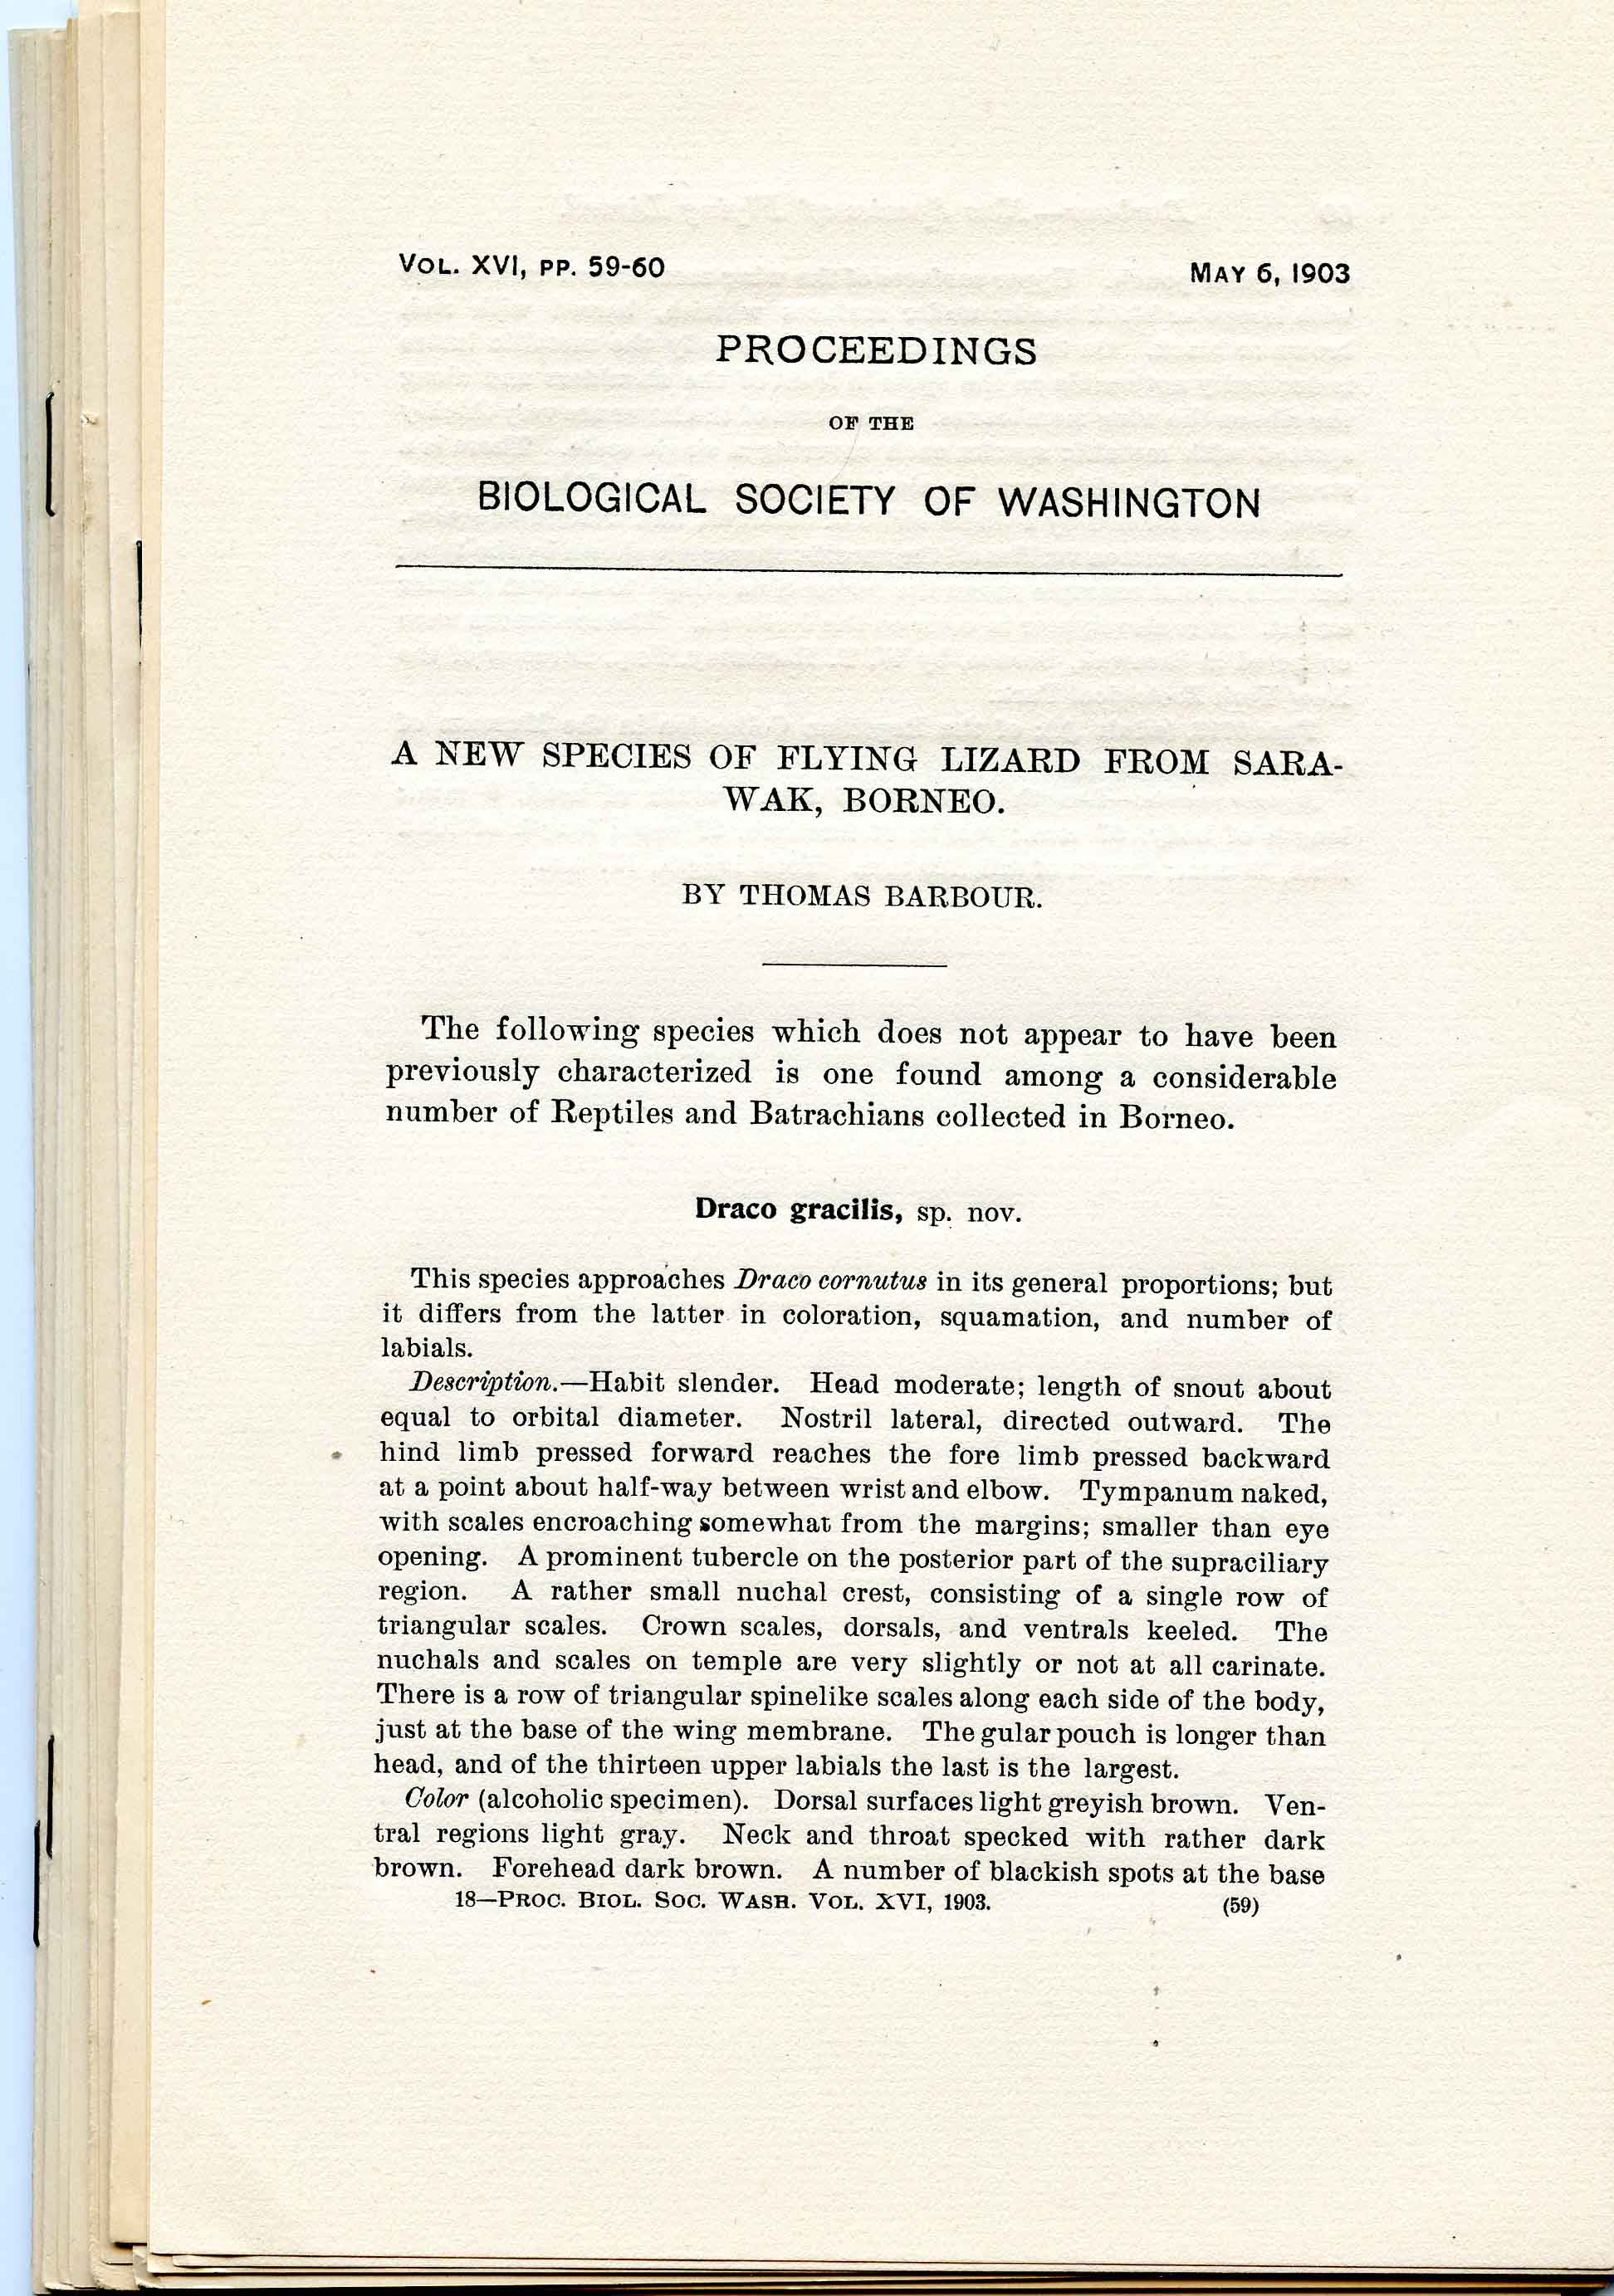 Image for Bundle #7 (Proceedings of the Biological Society of Washington),